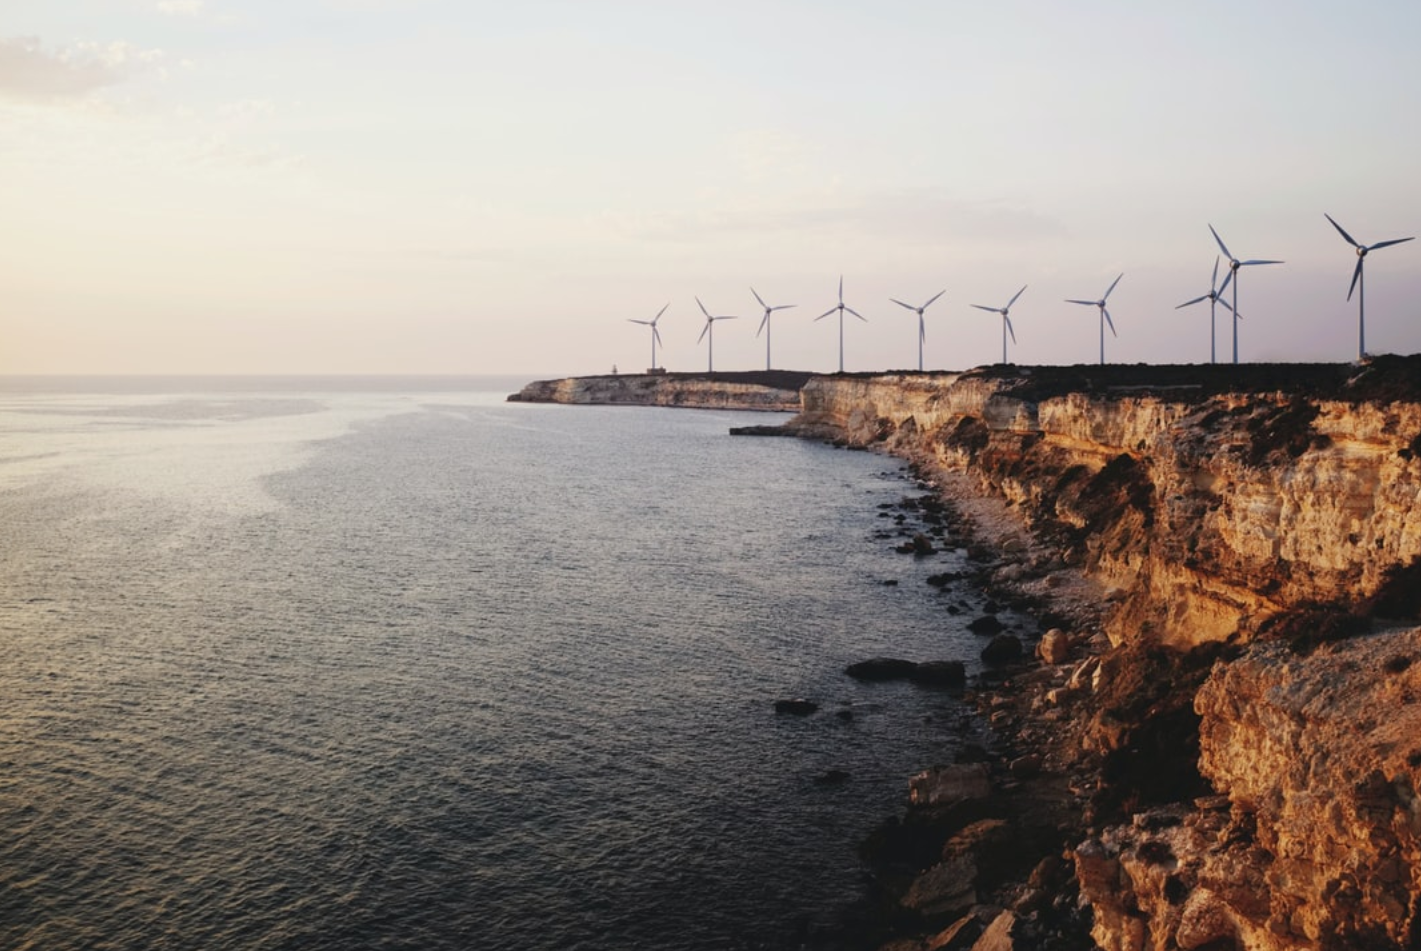 Windmills lined up on a rocky coast